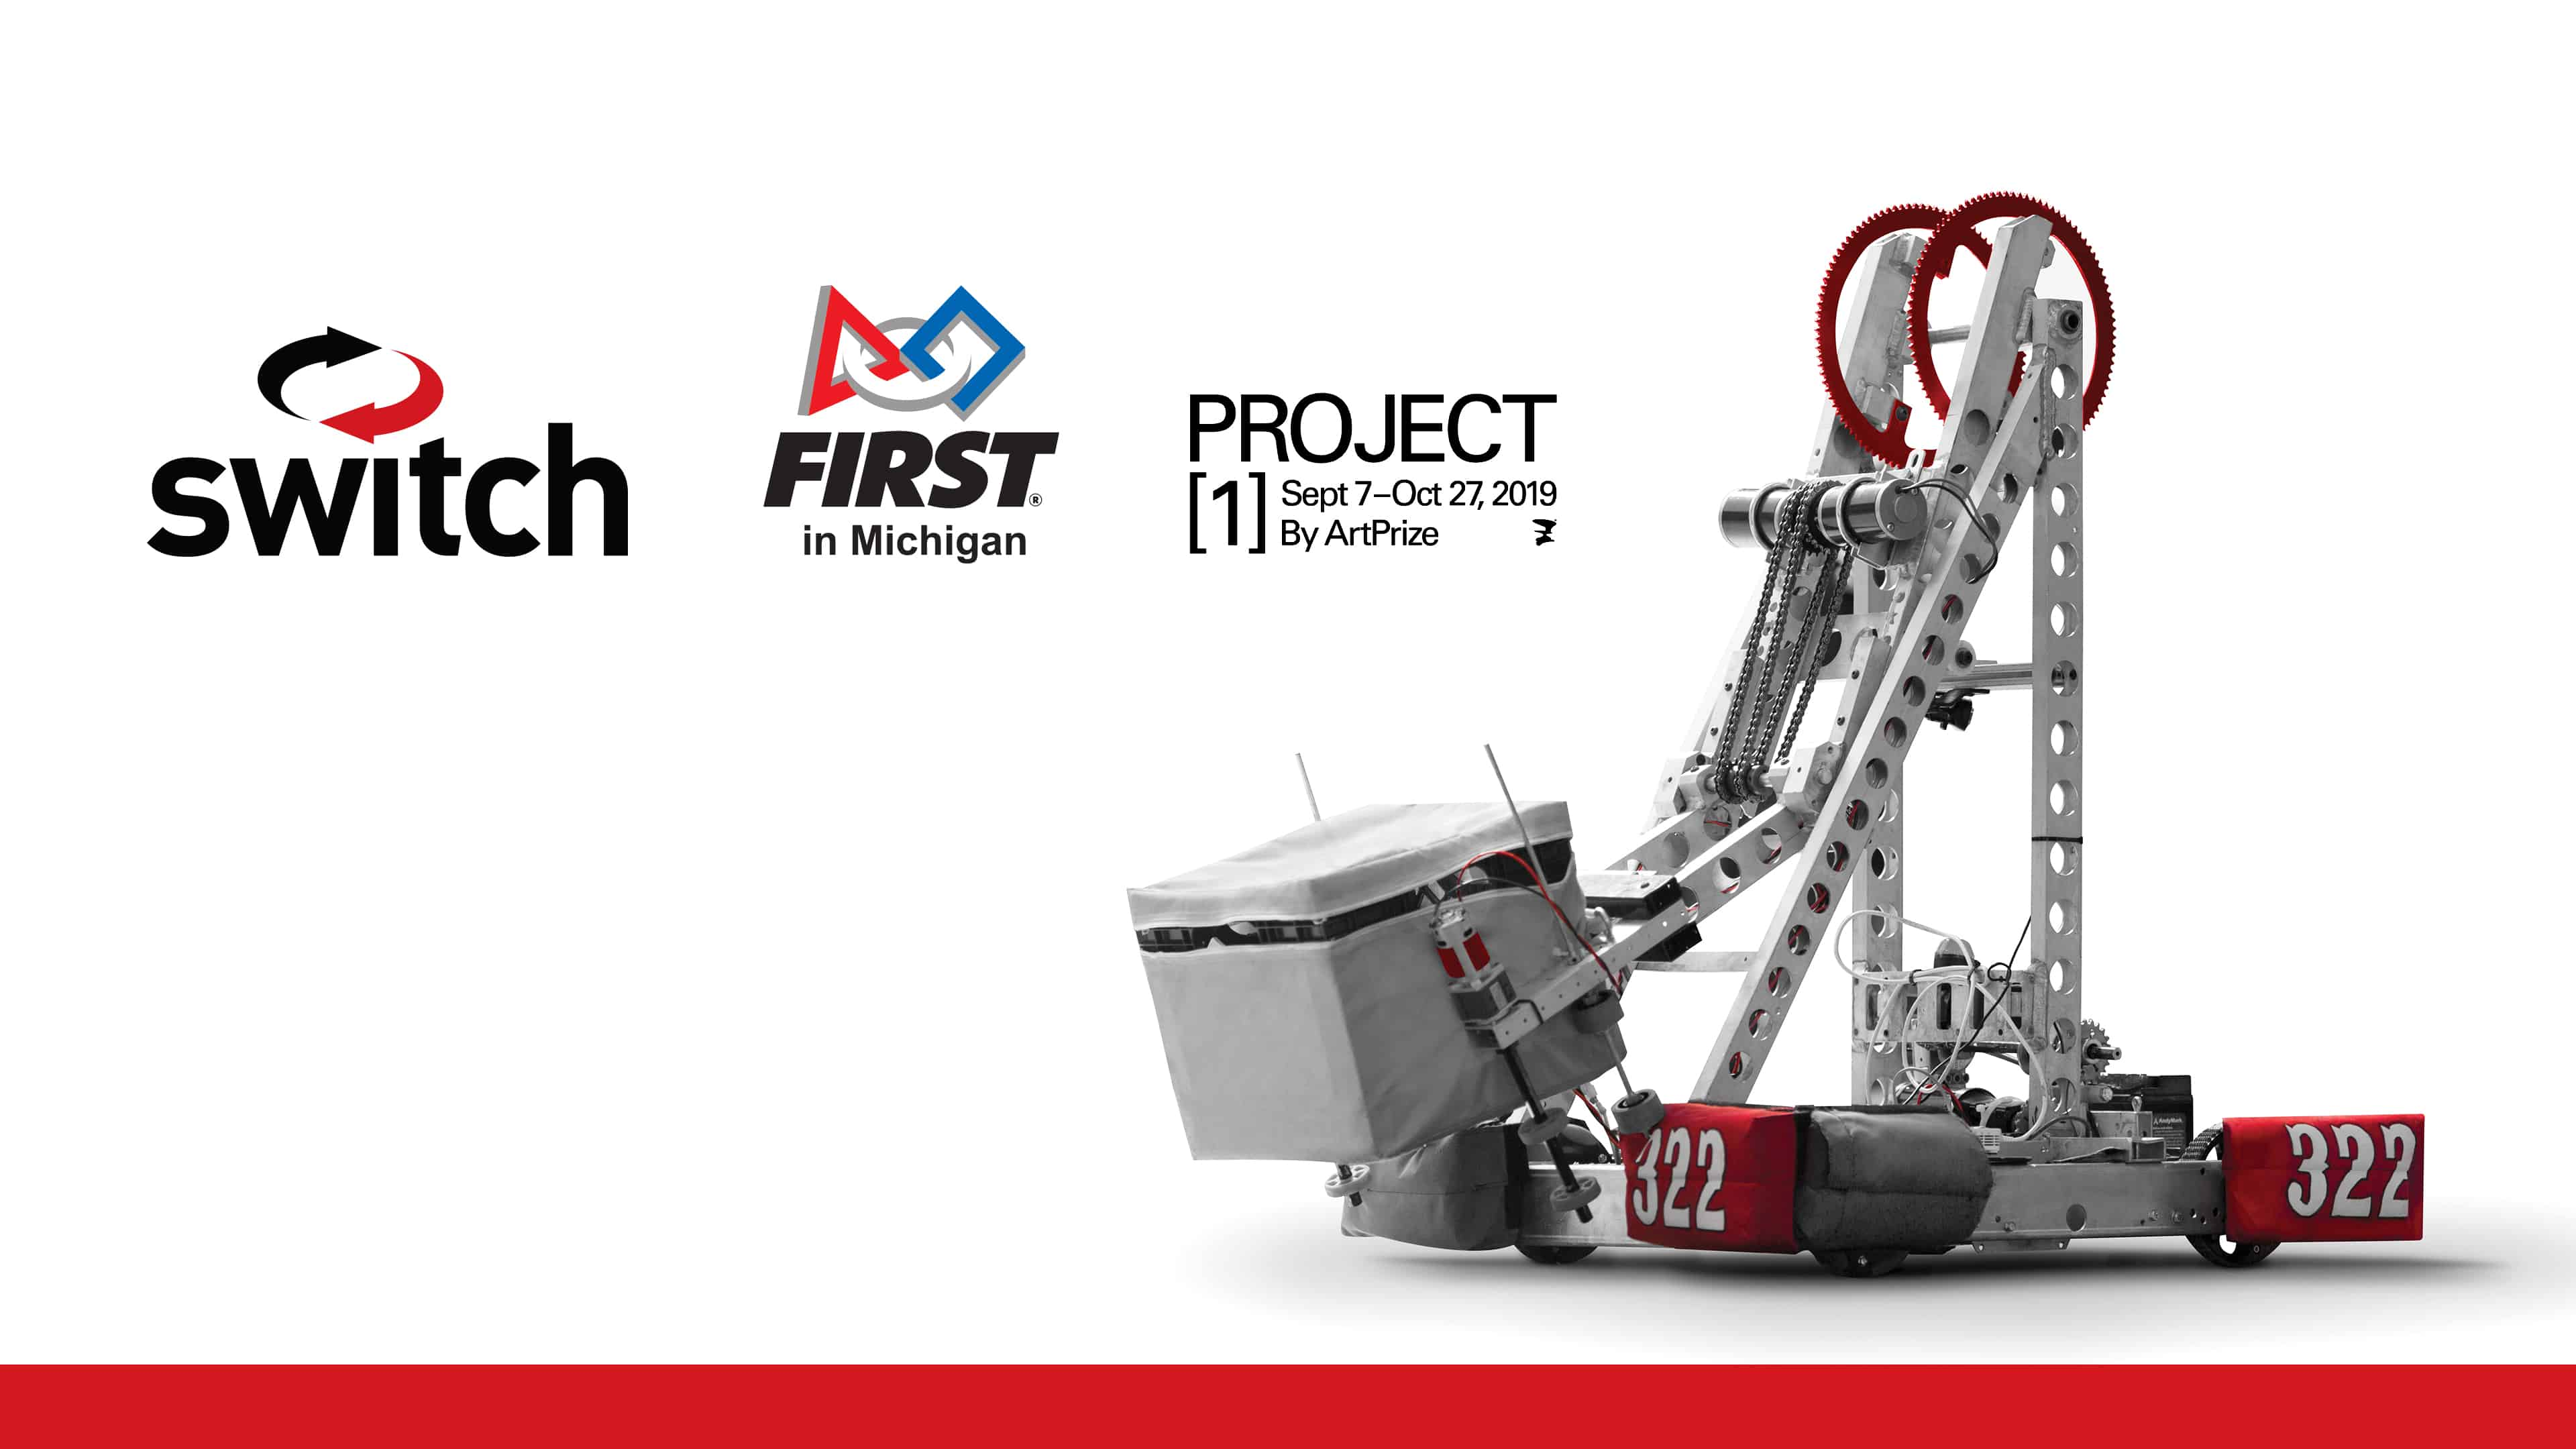 Switch Sponsors FIRST<sup><small>®</small></sup> in Michigan Robotics Teams in STEAM-Based Learning Experiences at Project 1 by ArtPrize